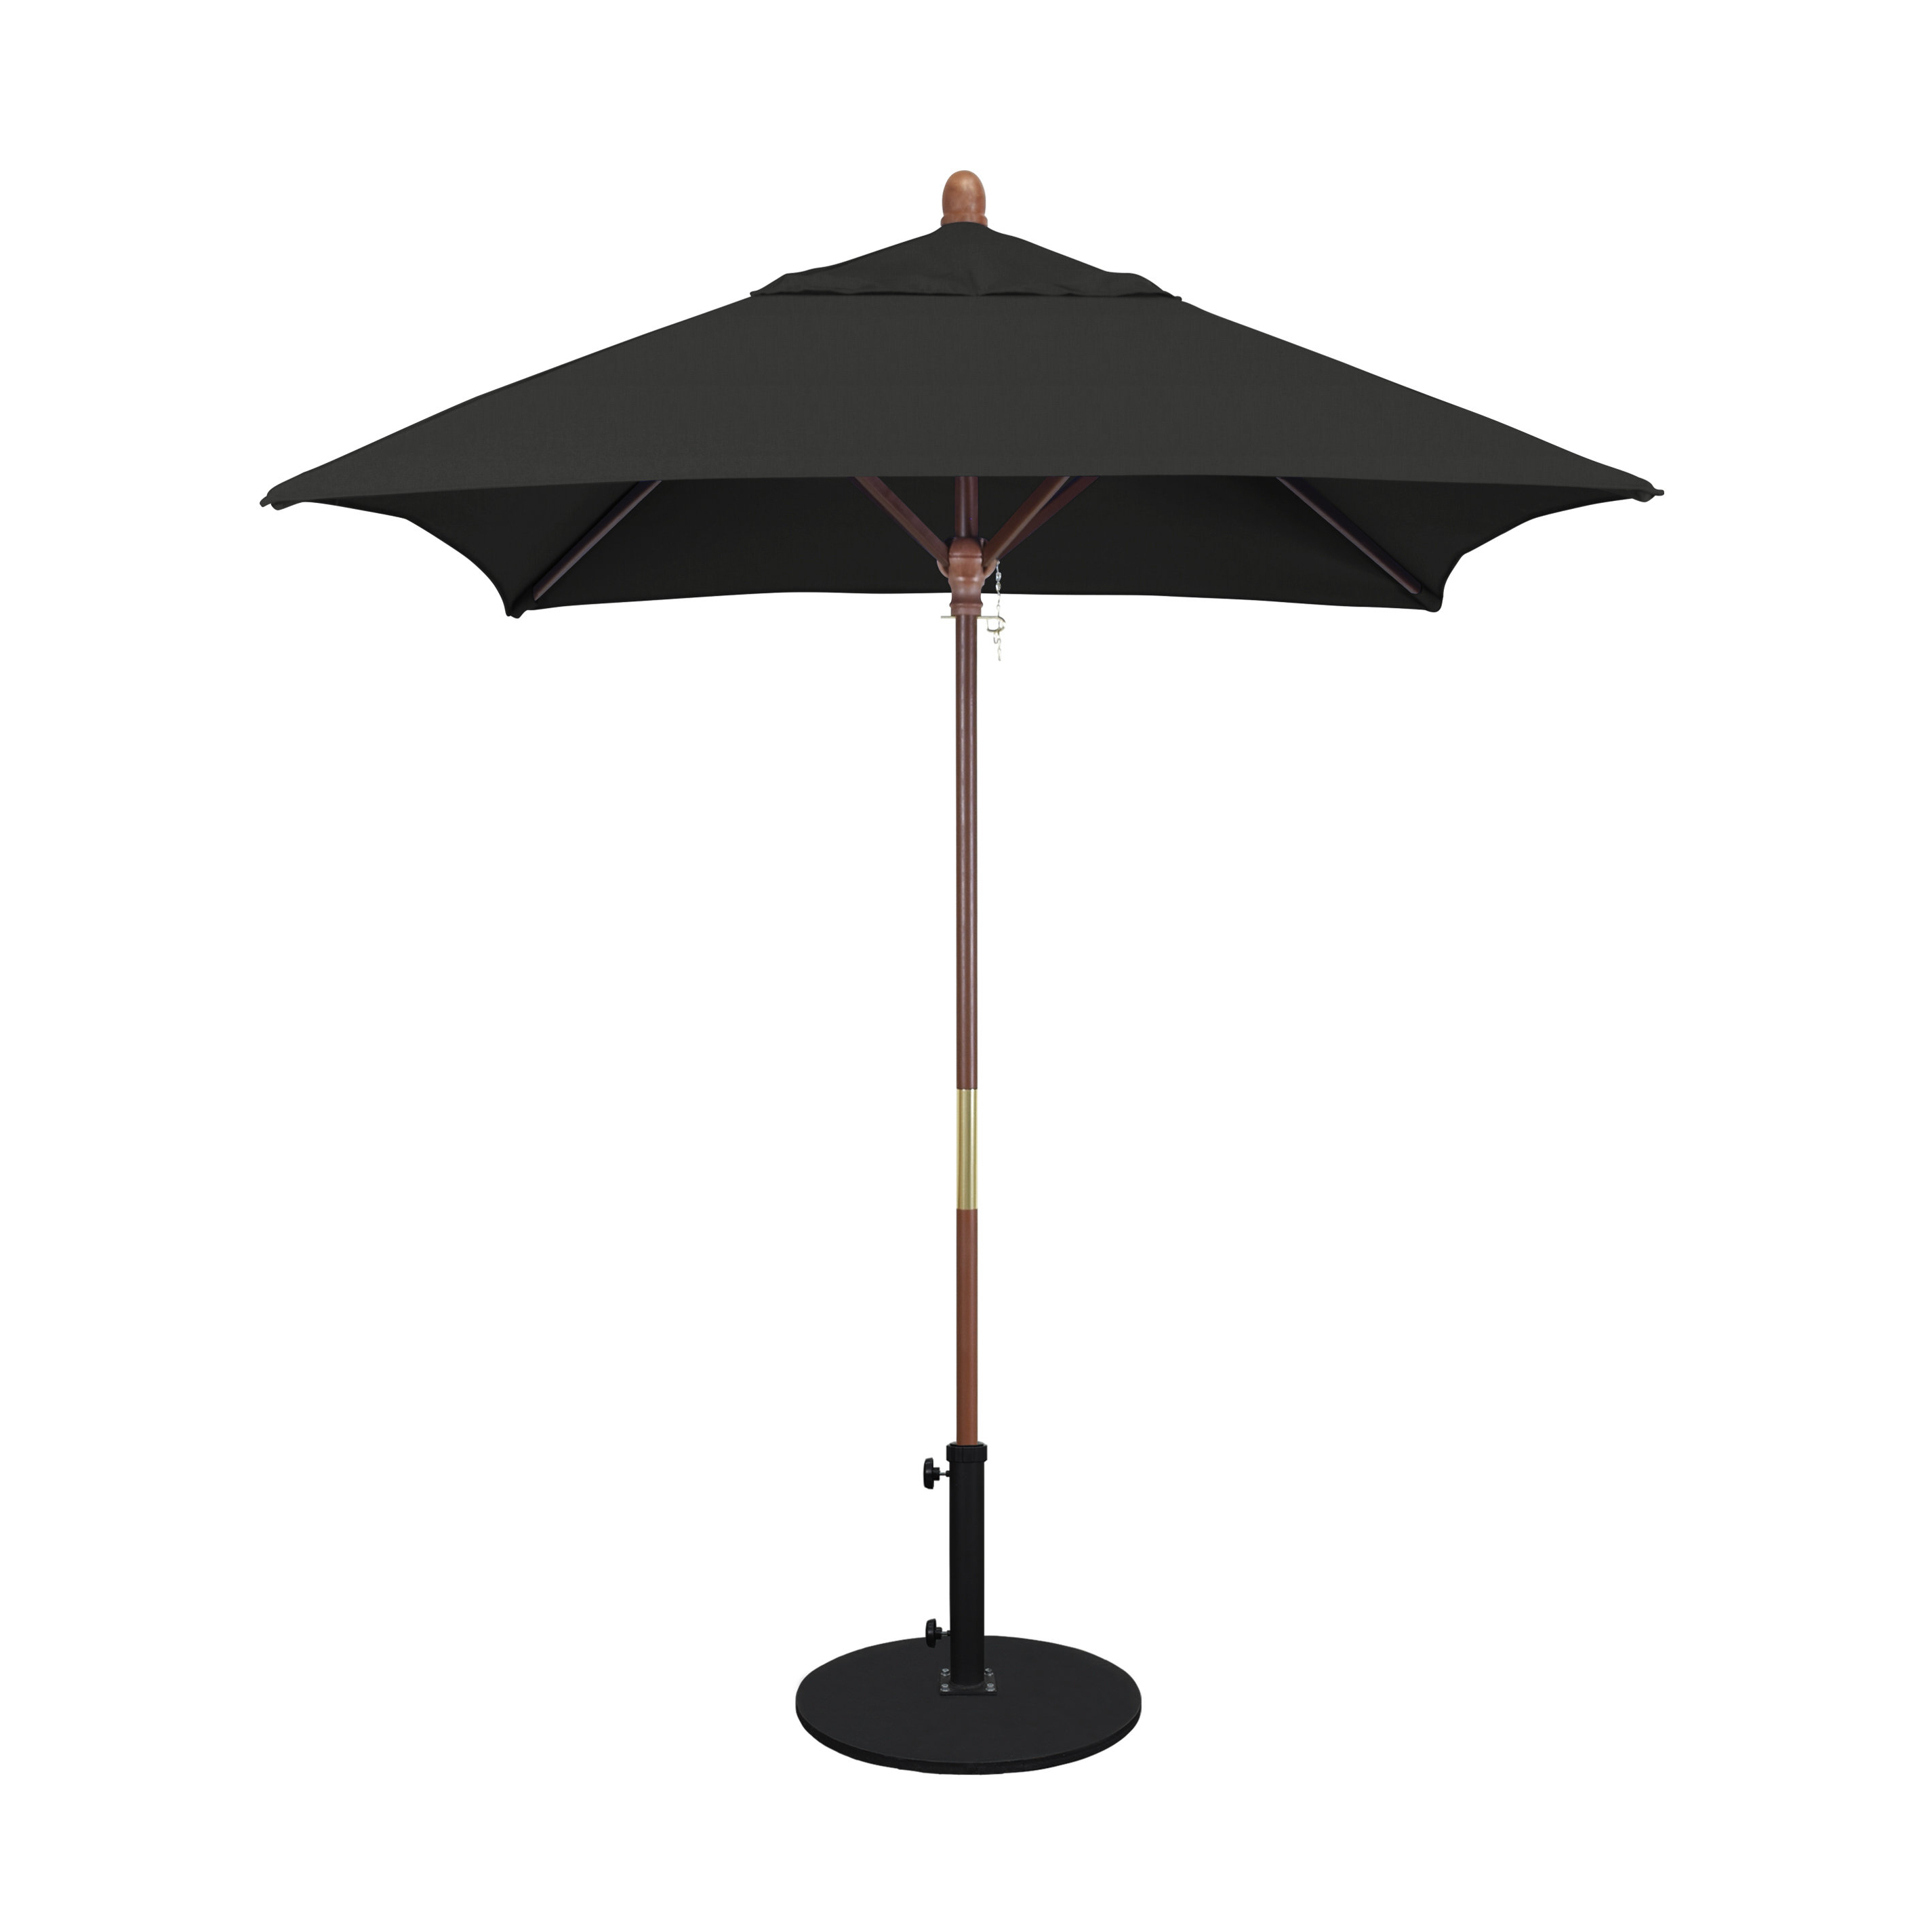 Ethan 6' Square Market Umbrella For Well Known Crowborough Square Market Umbrellas (View 17 of 20)